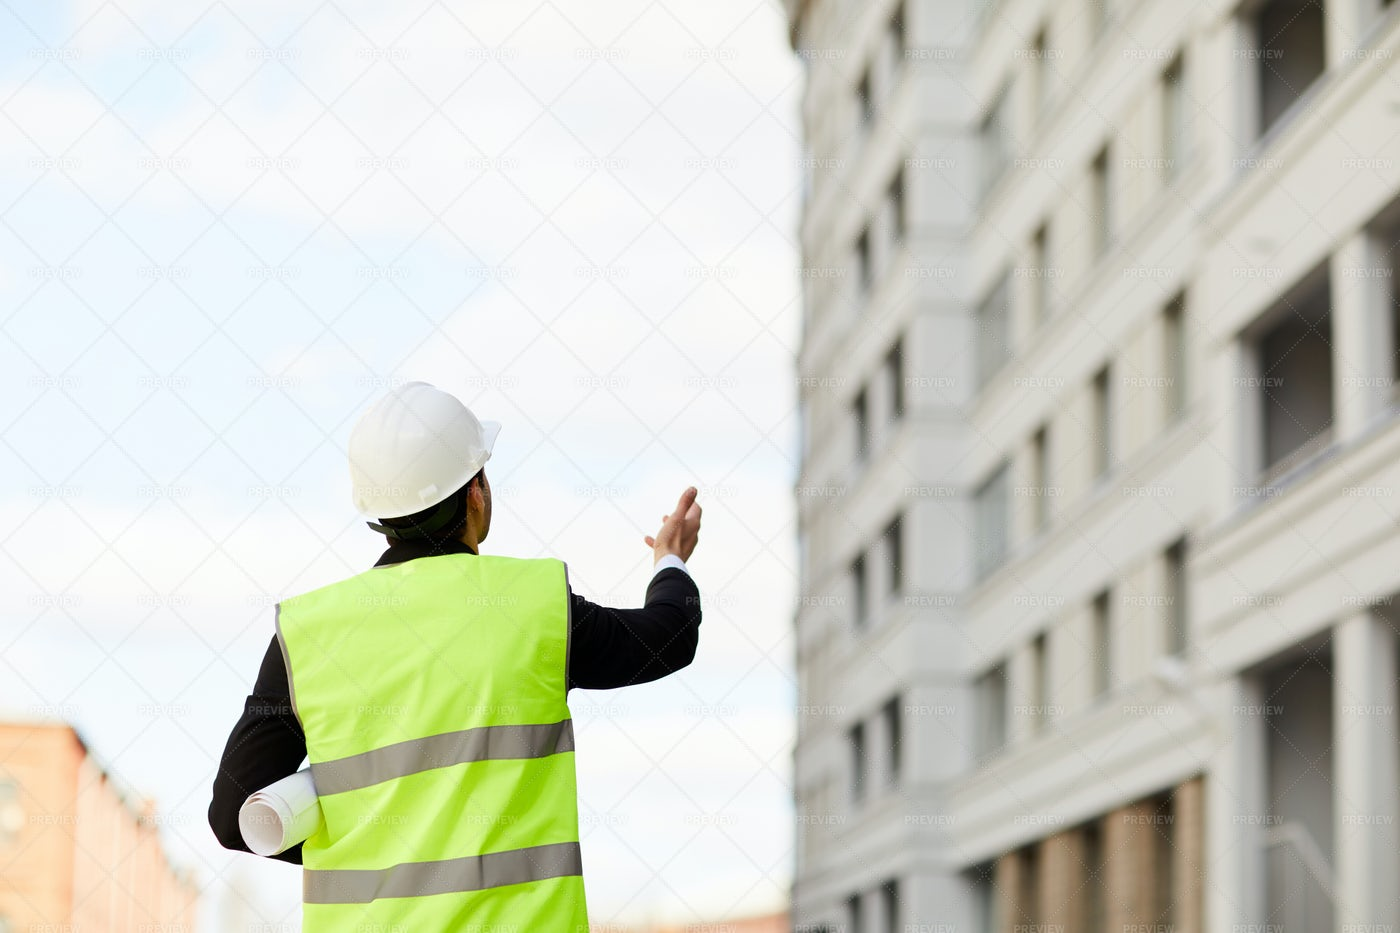 Unrecognizable Worker At...: Stock Photos